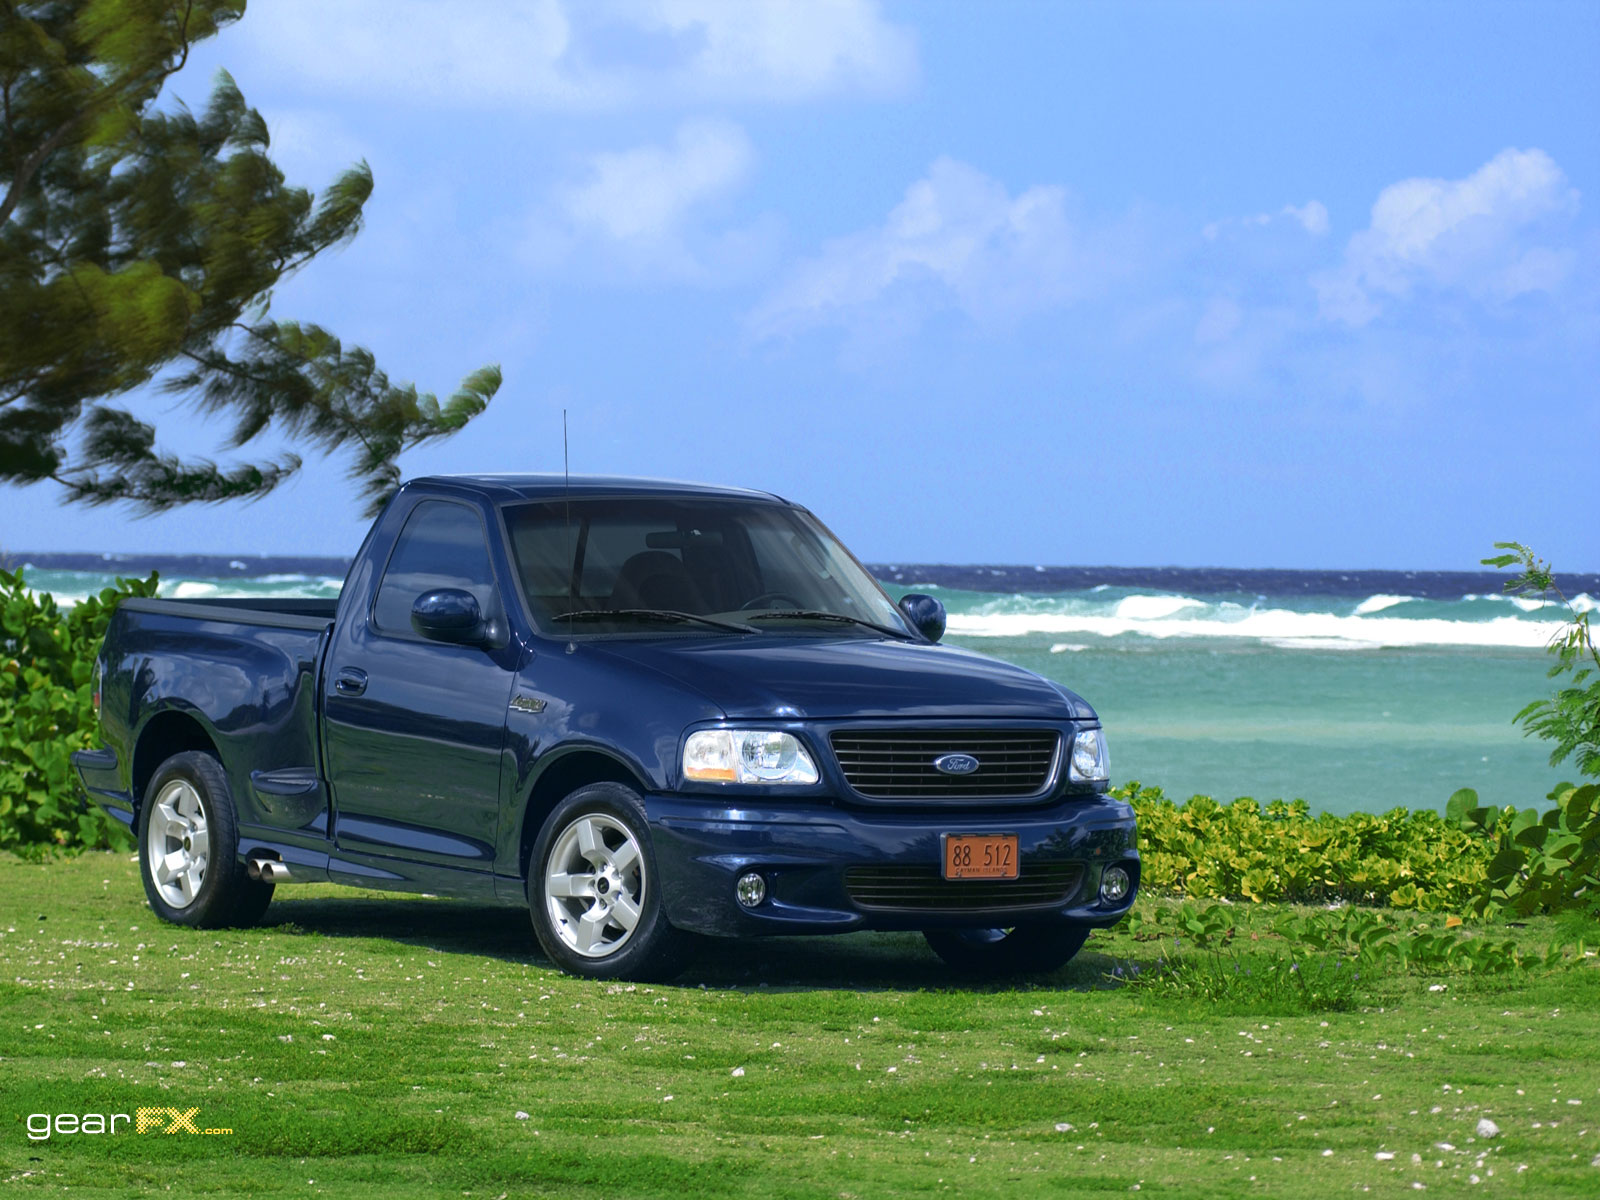 Ford lightning wallpaper Wallpapers Adorable Wallpapers